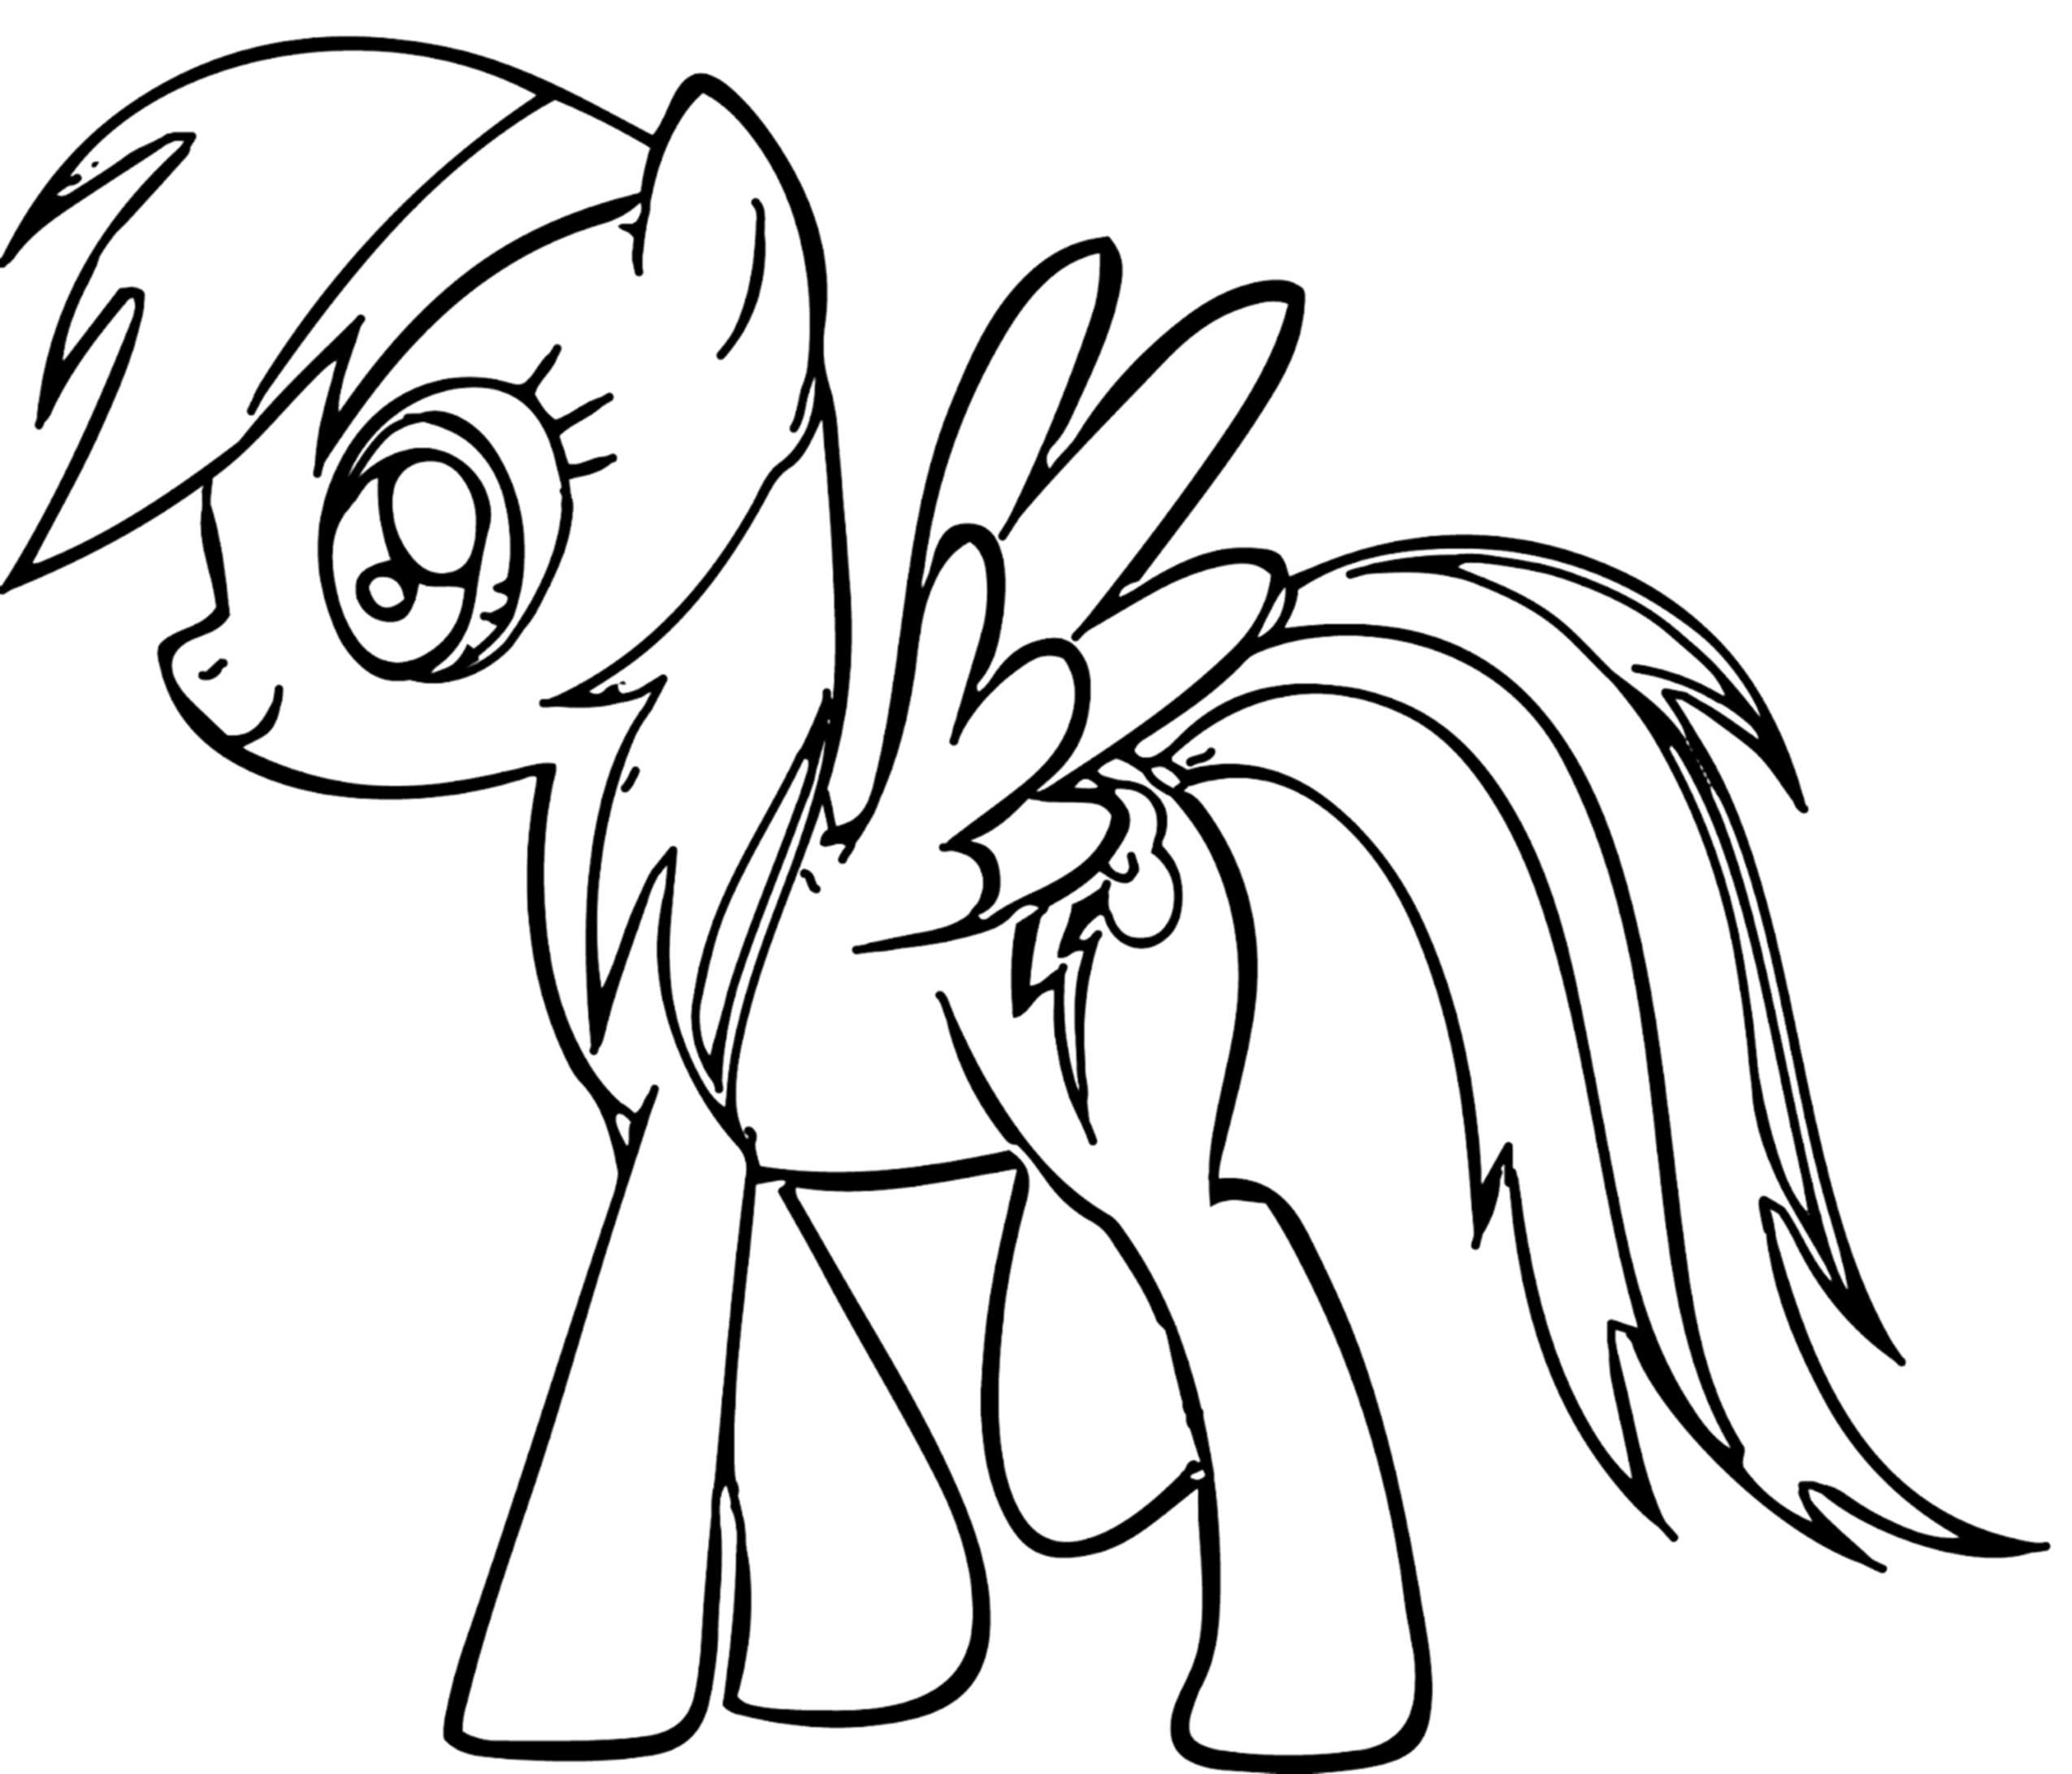 Rainbow Dash Coloring Page Rainbow Dash Coloring Pages  Best Coloring Pages For Kids